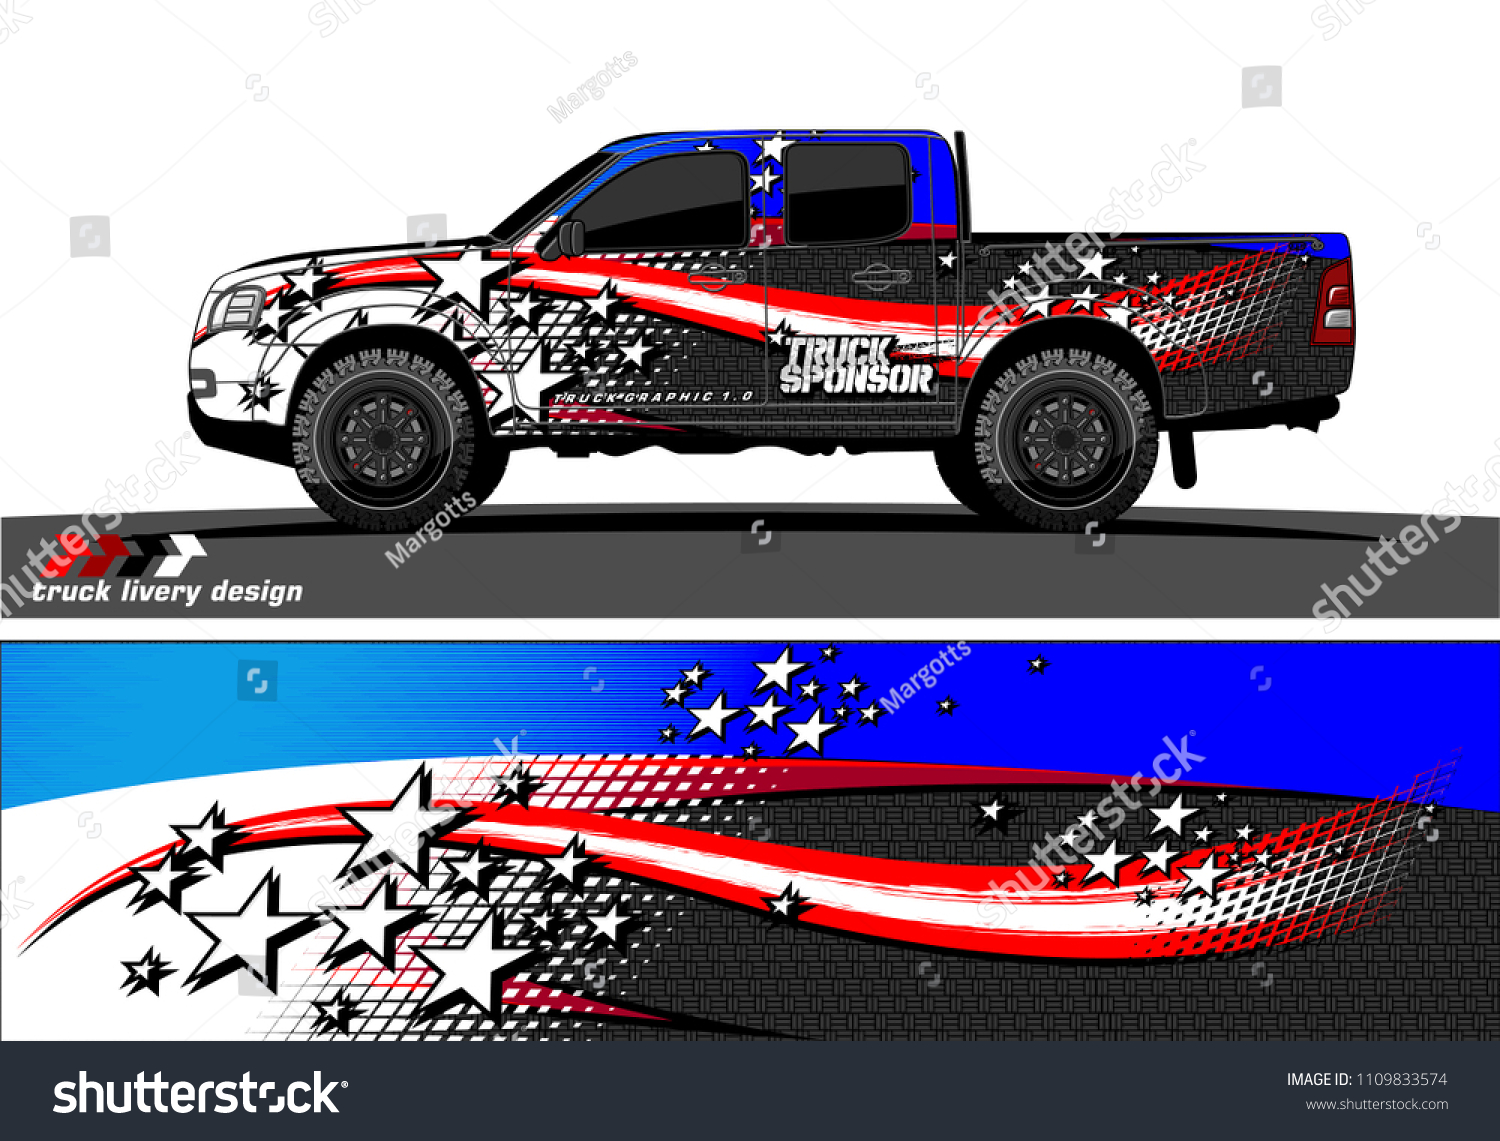 Truck decal vector design abstract grunge background for vehicle vinyl wrap